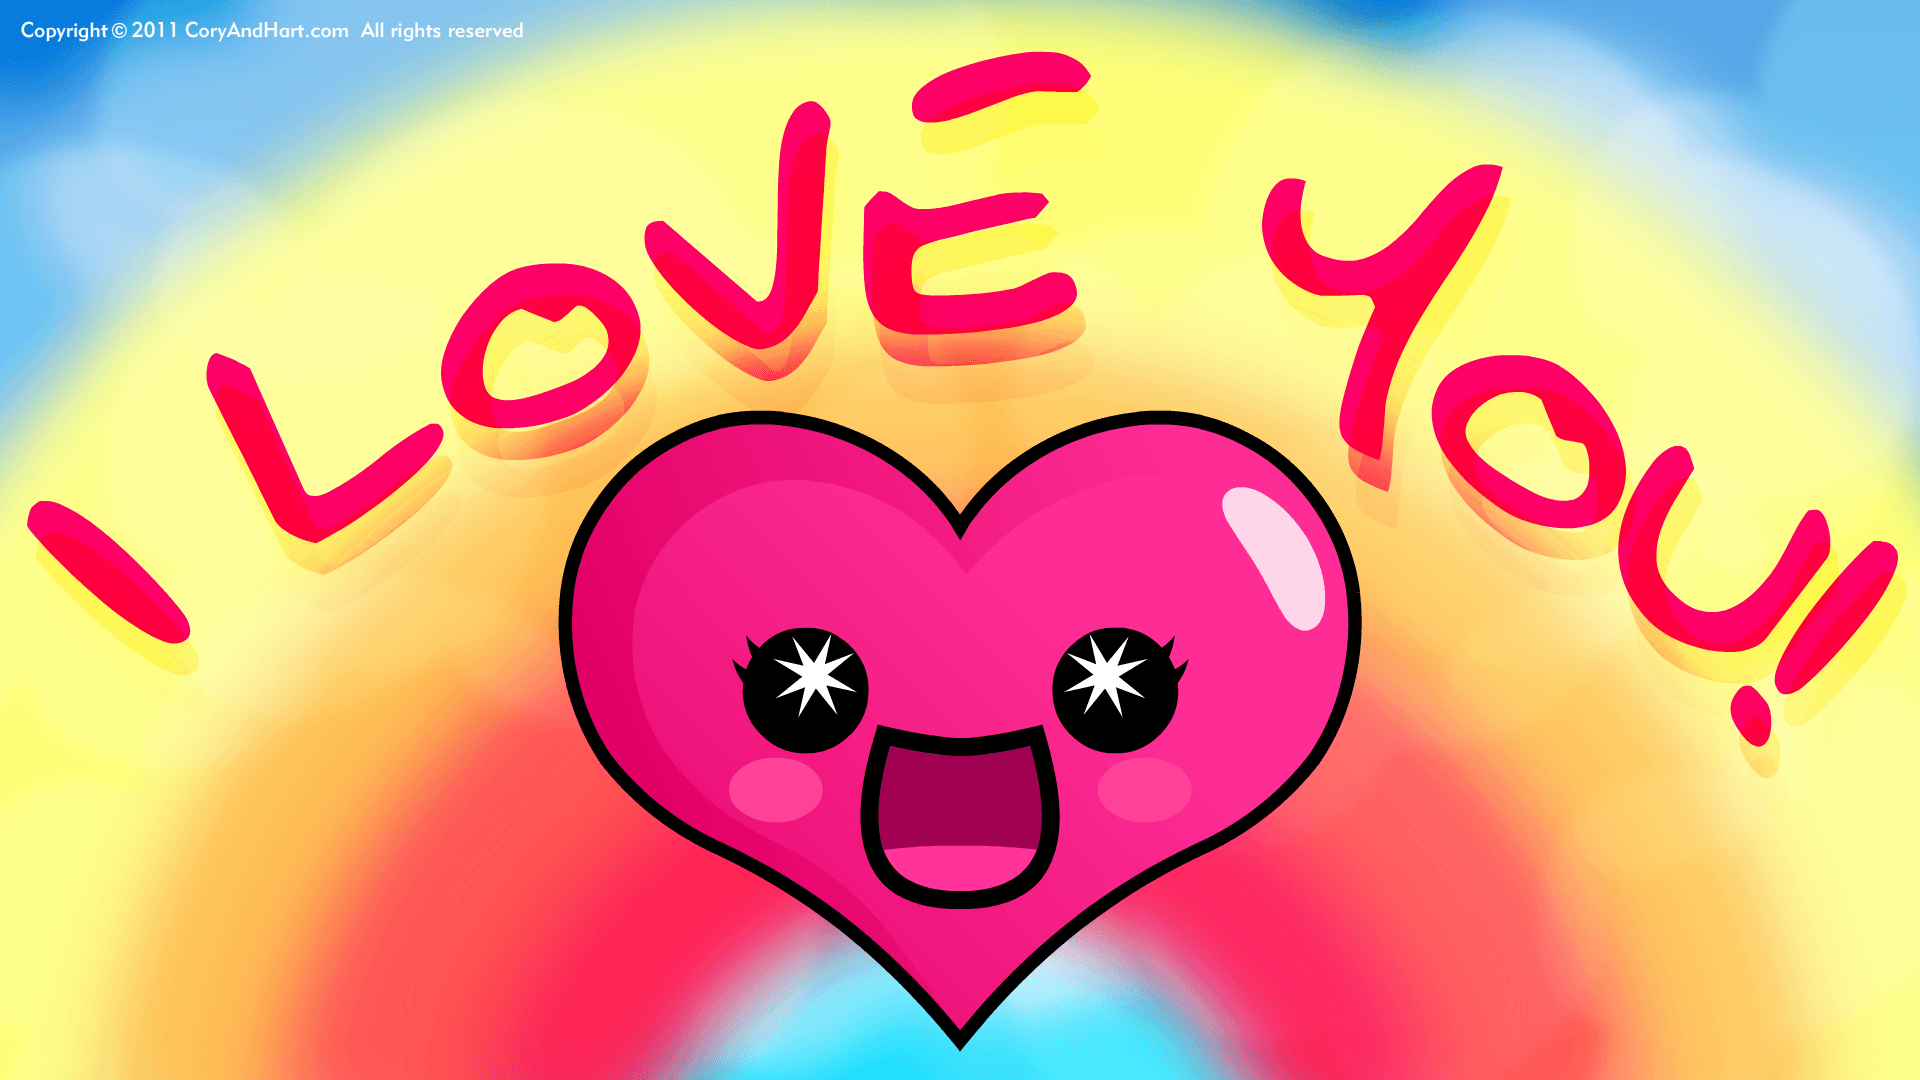 My cute Love Wallpaper : cute I Love You Wallpapers - Wallpaper cave